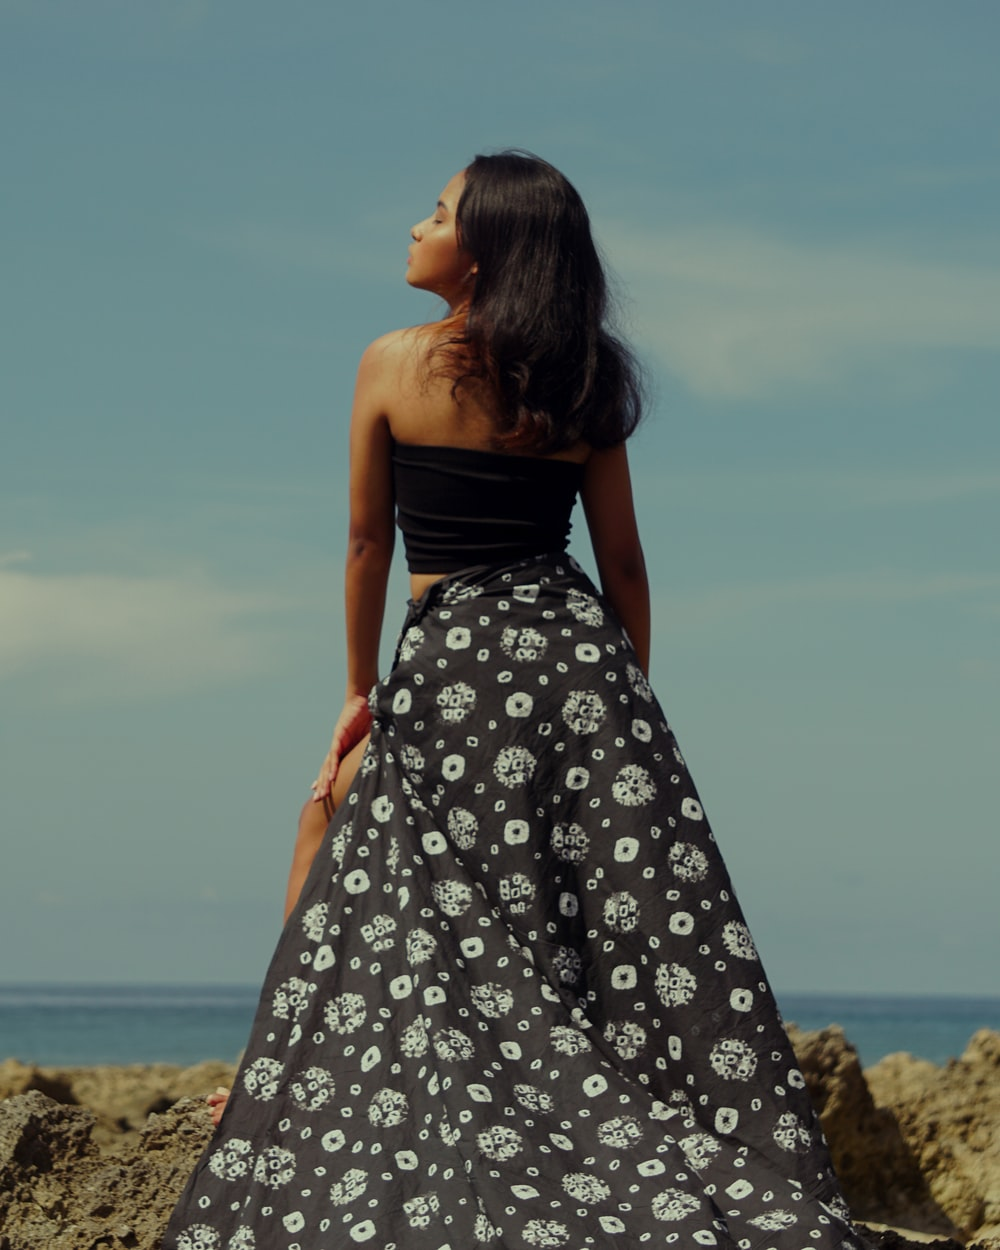 woman in black and white floral tube dress standing on brown sand during daytime